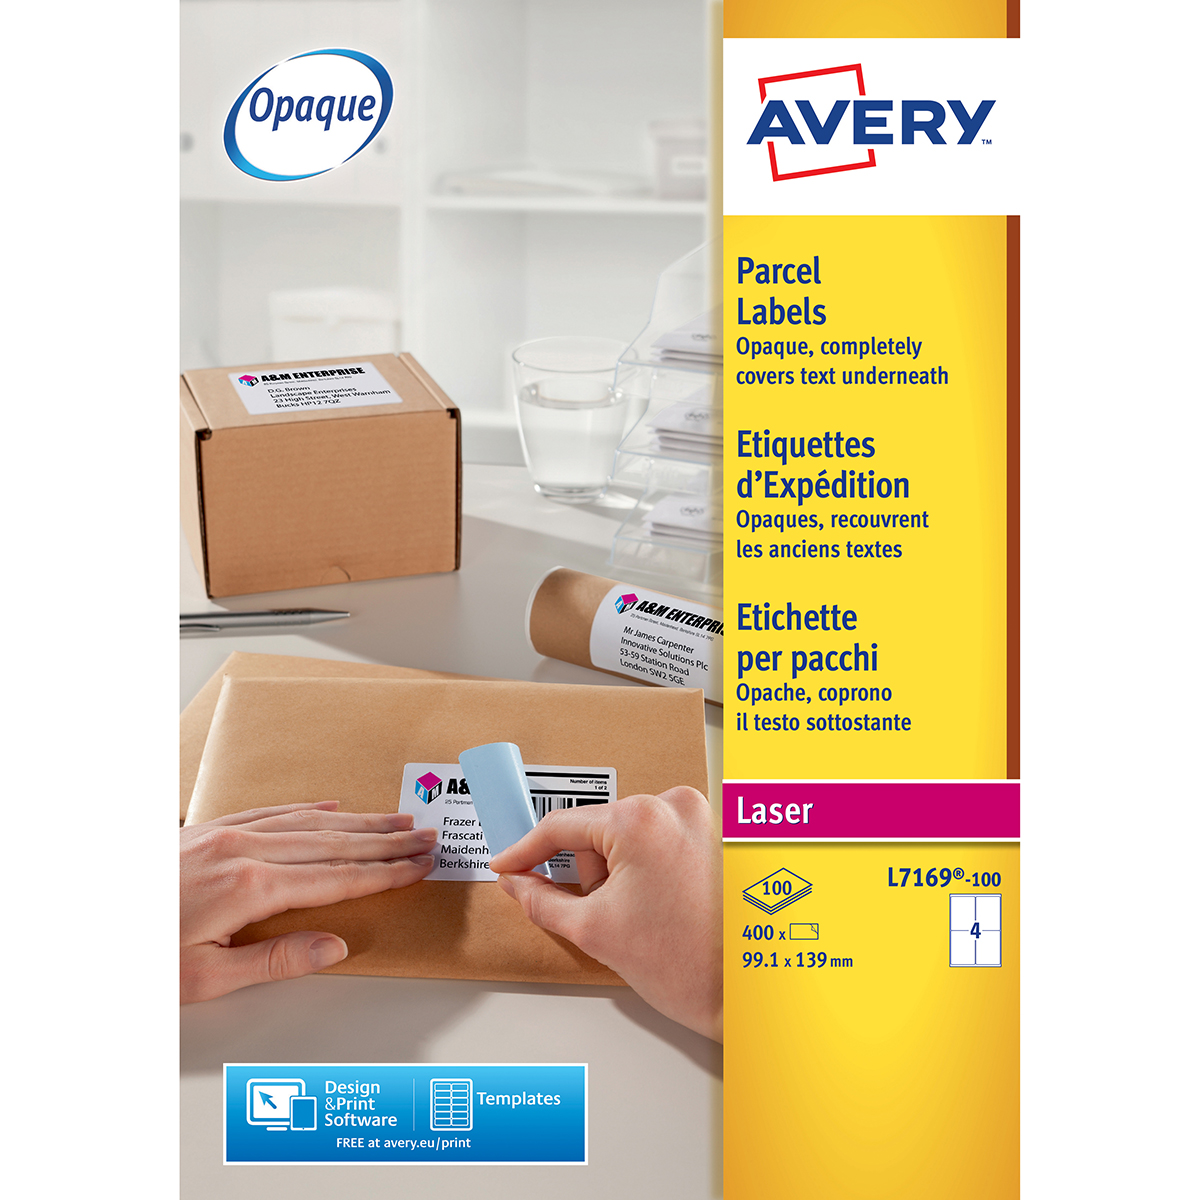 Avery L7169-100 Parcel Labels 100 sheets - 4 Labels per Sheet